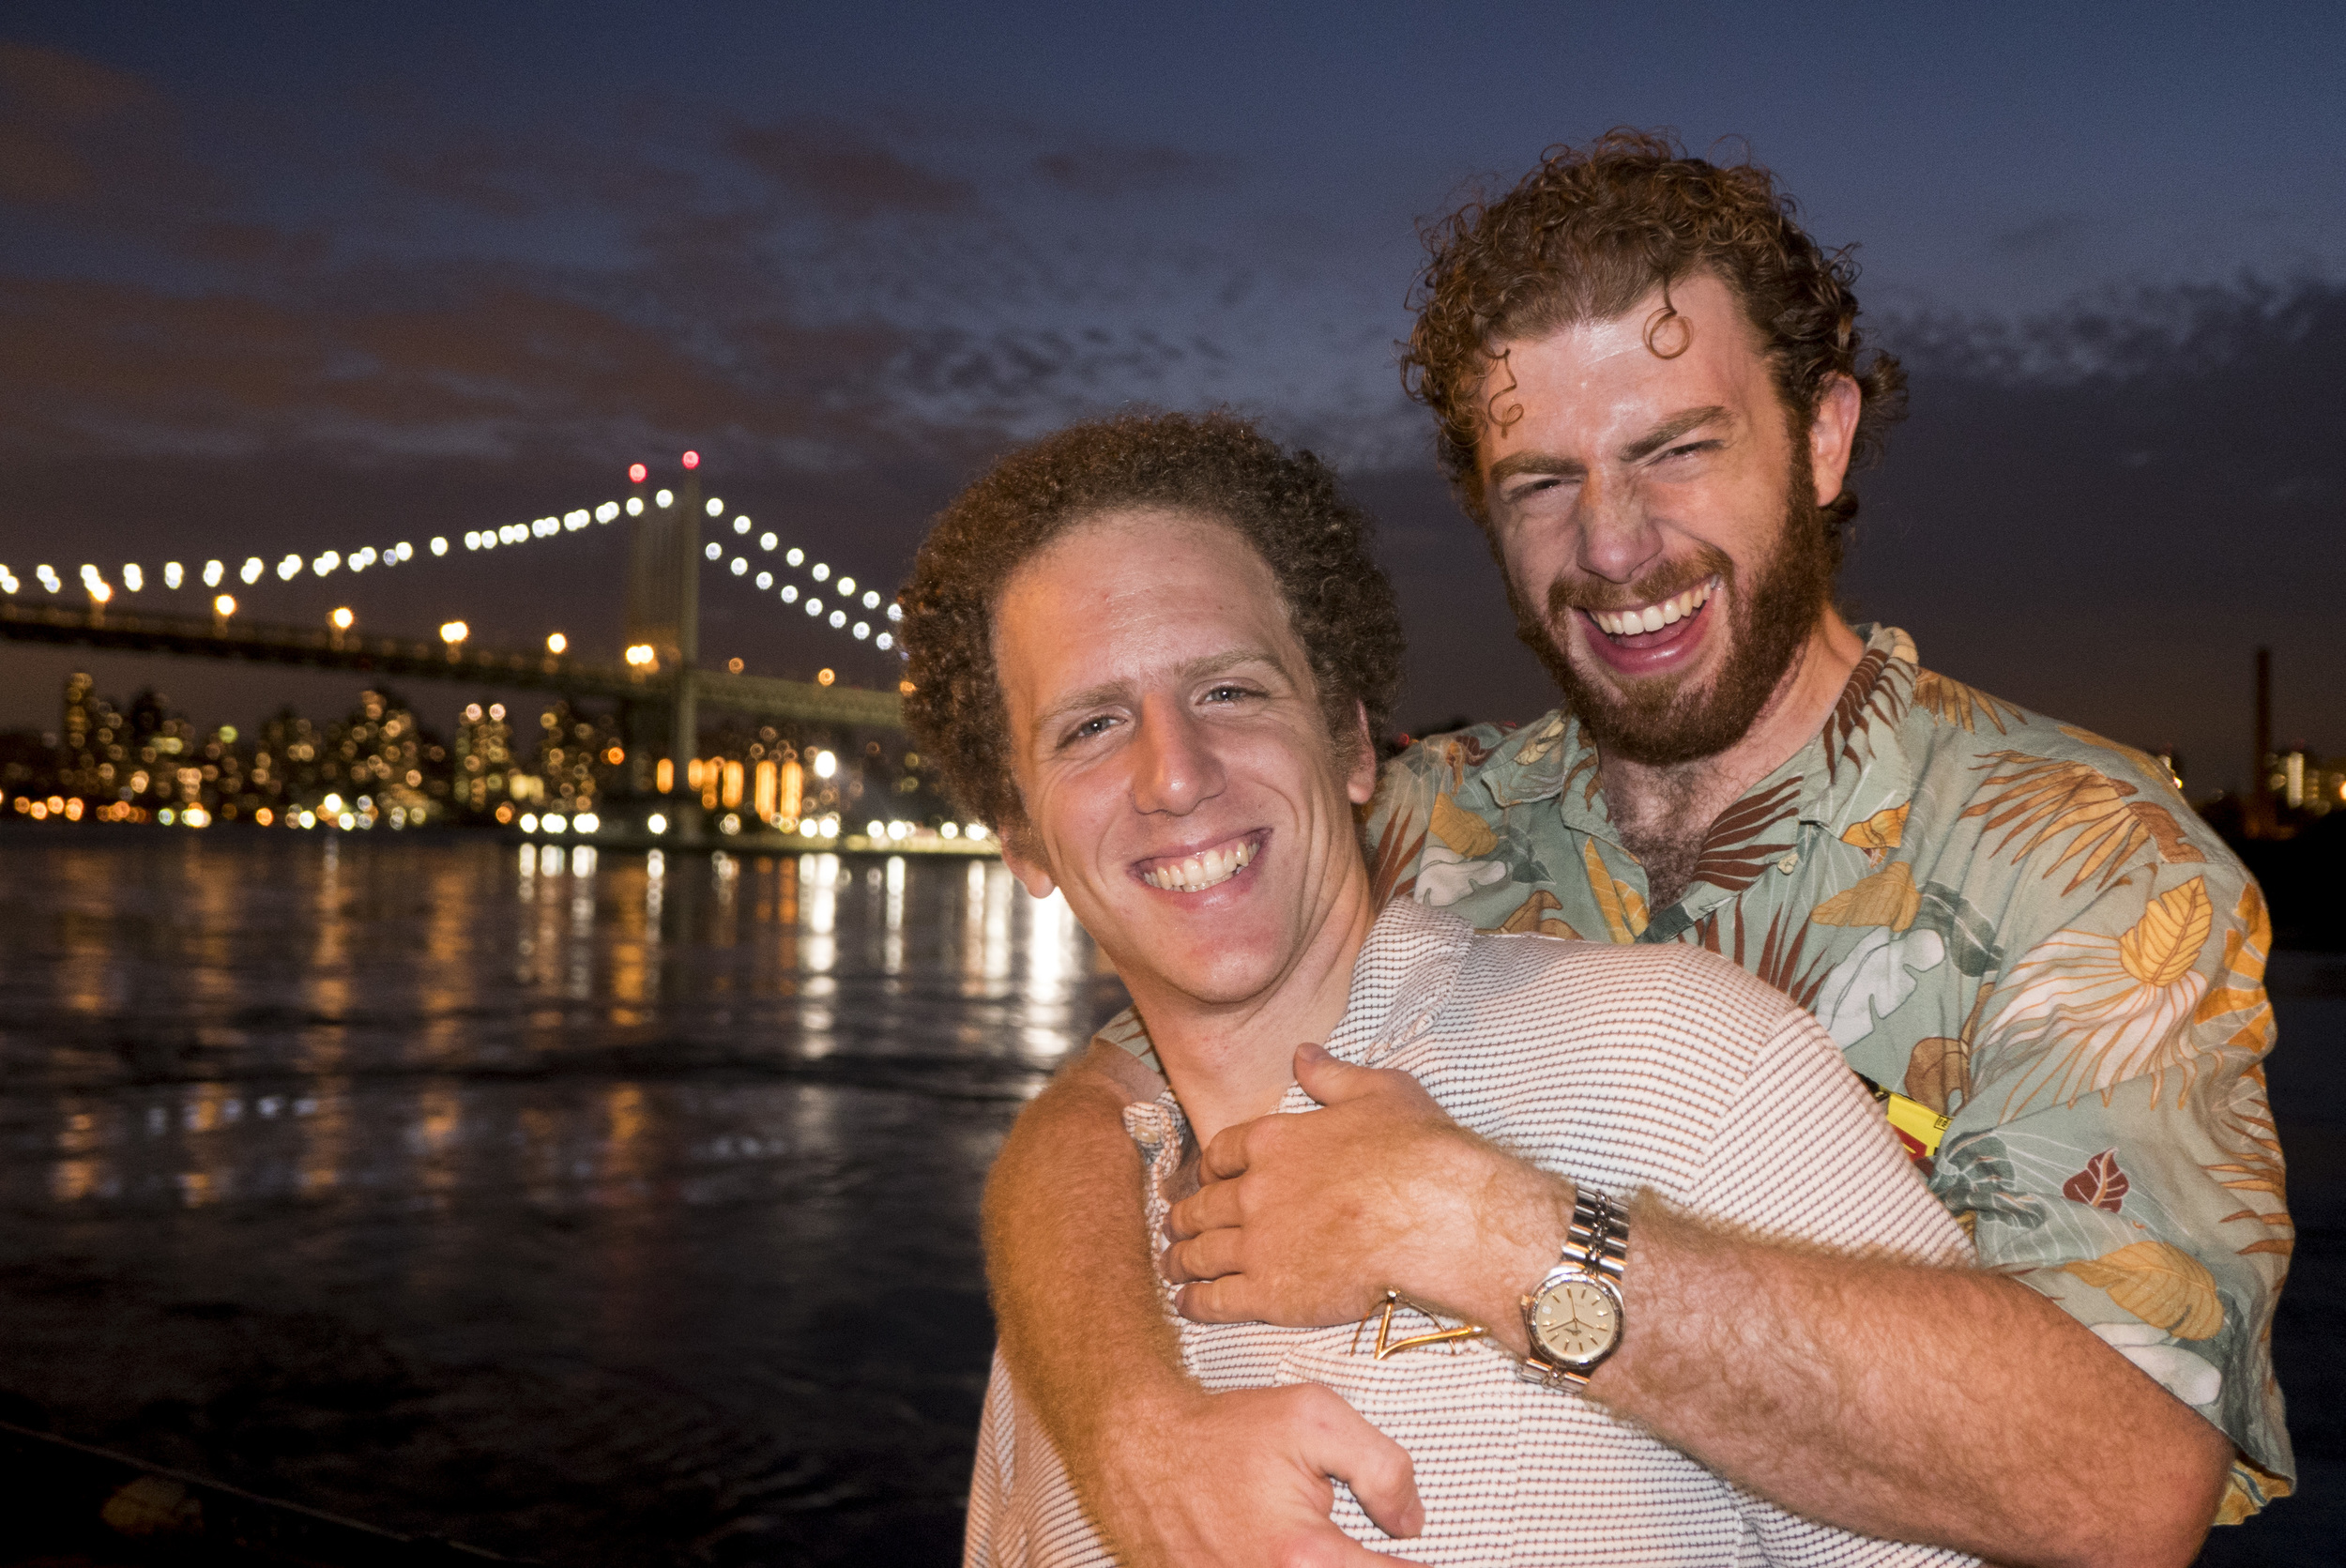 What a romantic vacation for Dan and Jeff.